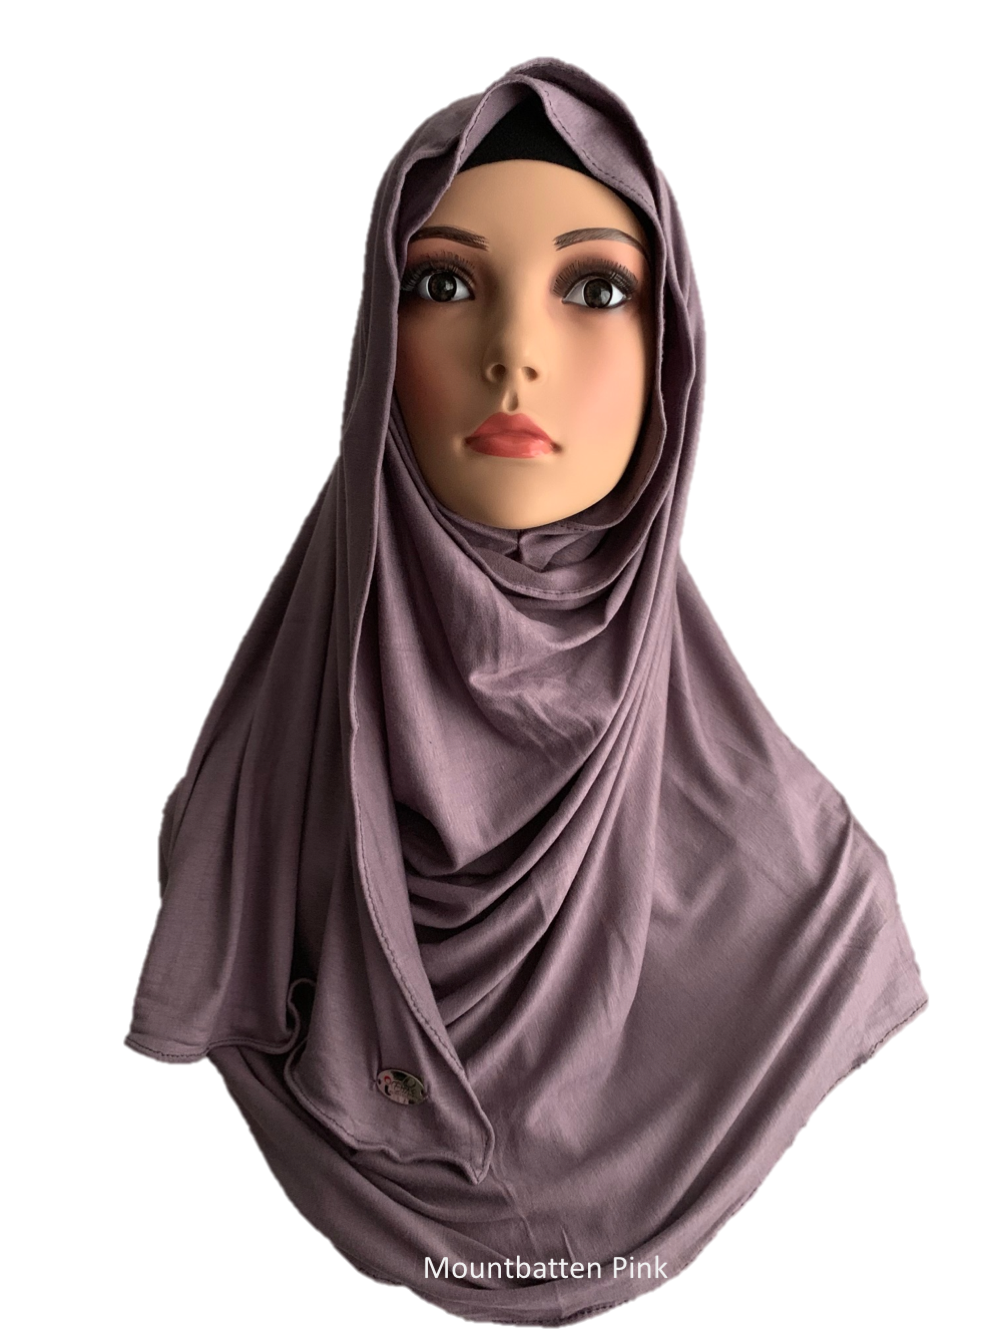 Mountbatten Pink stretchy (COT) instant hijab SF